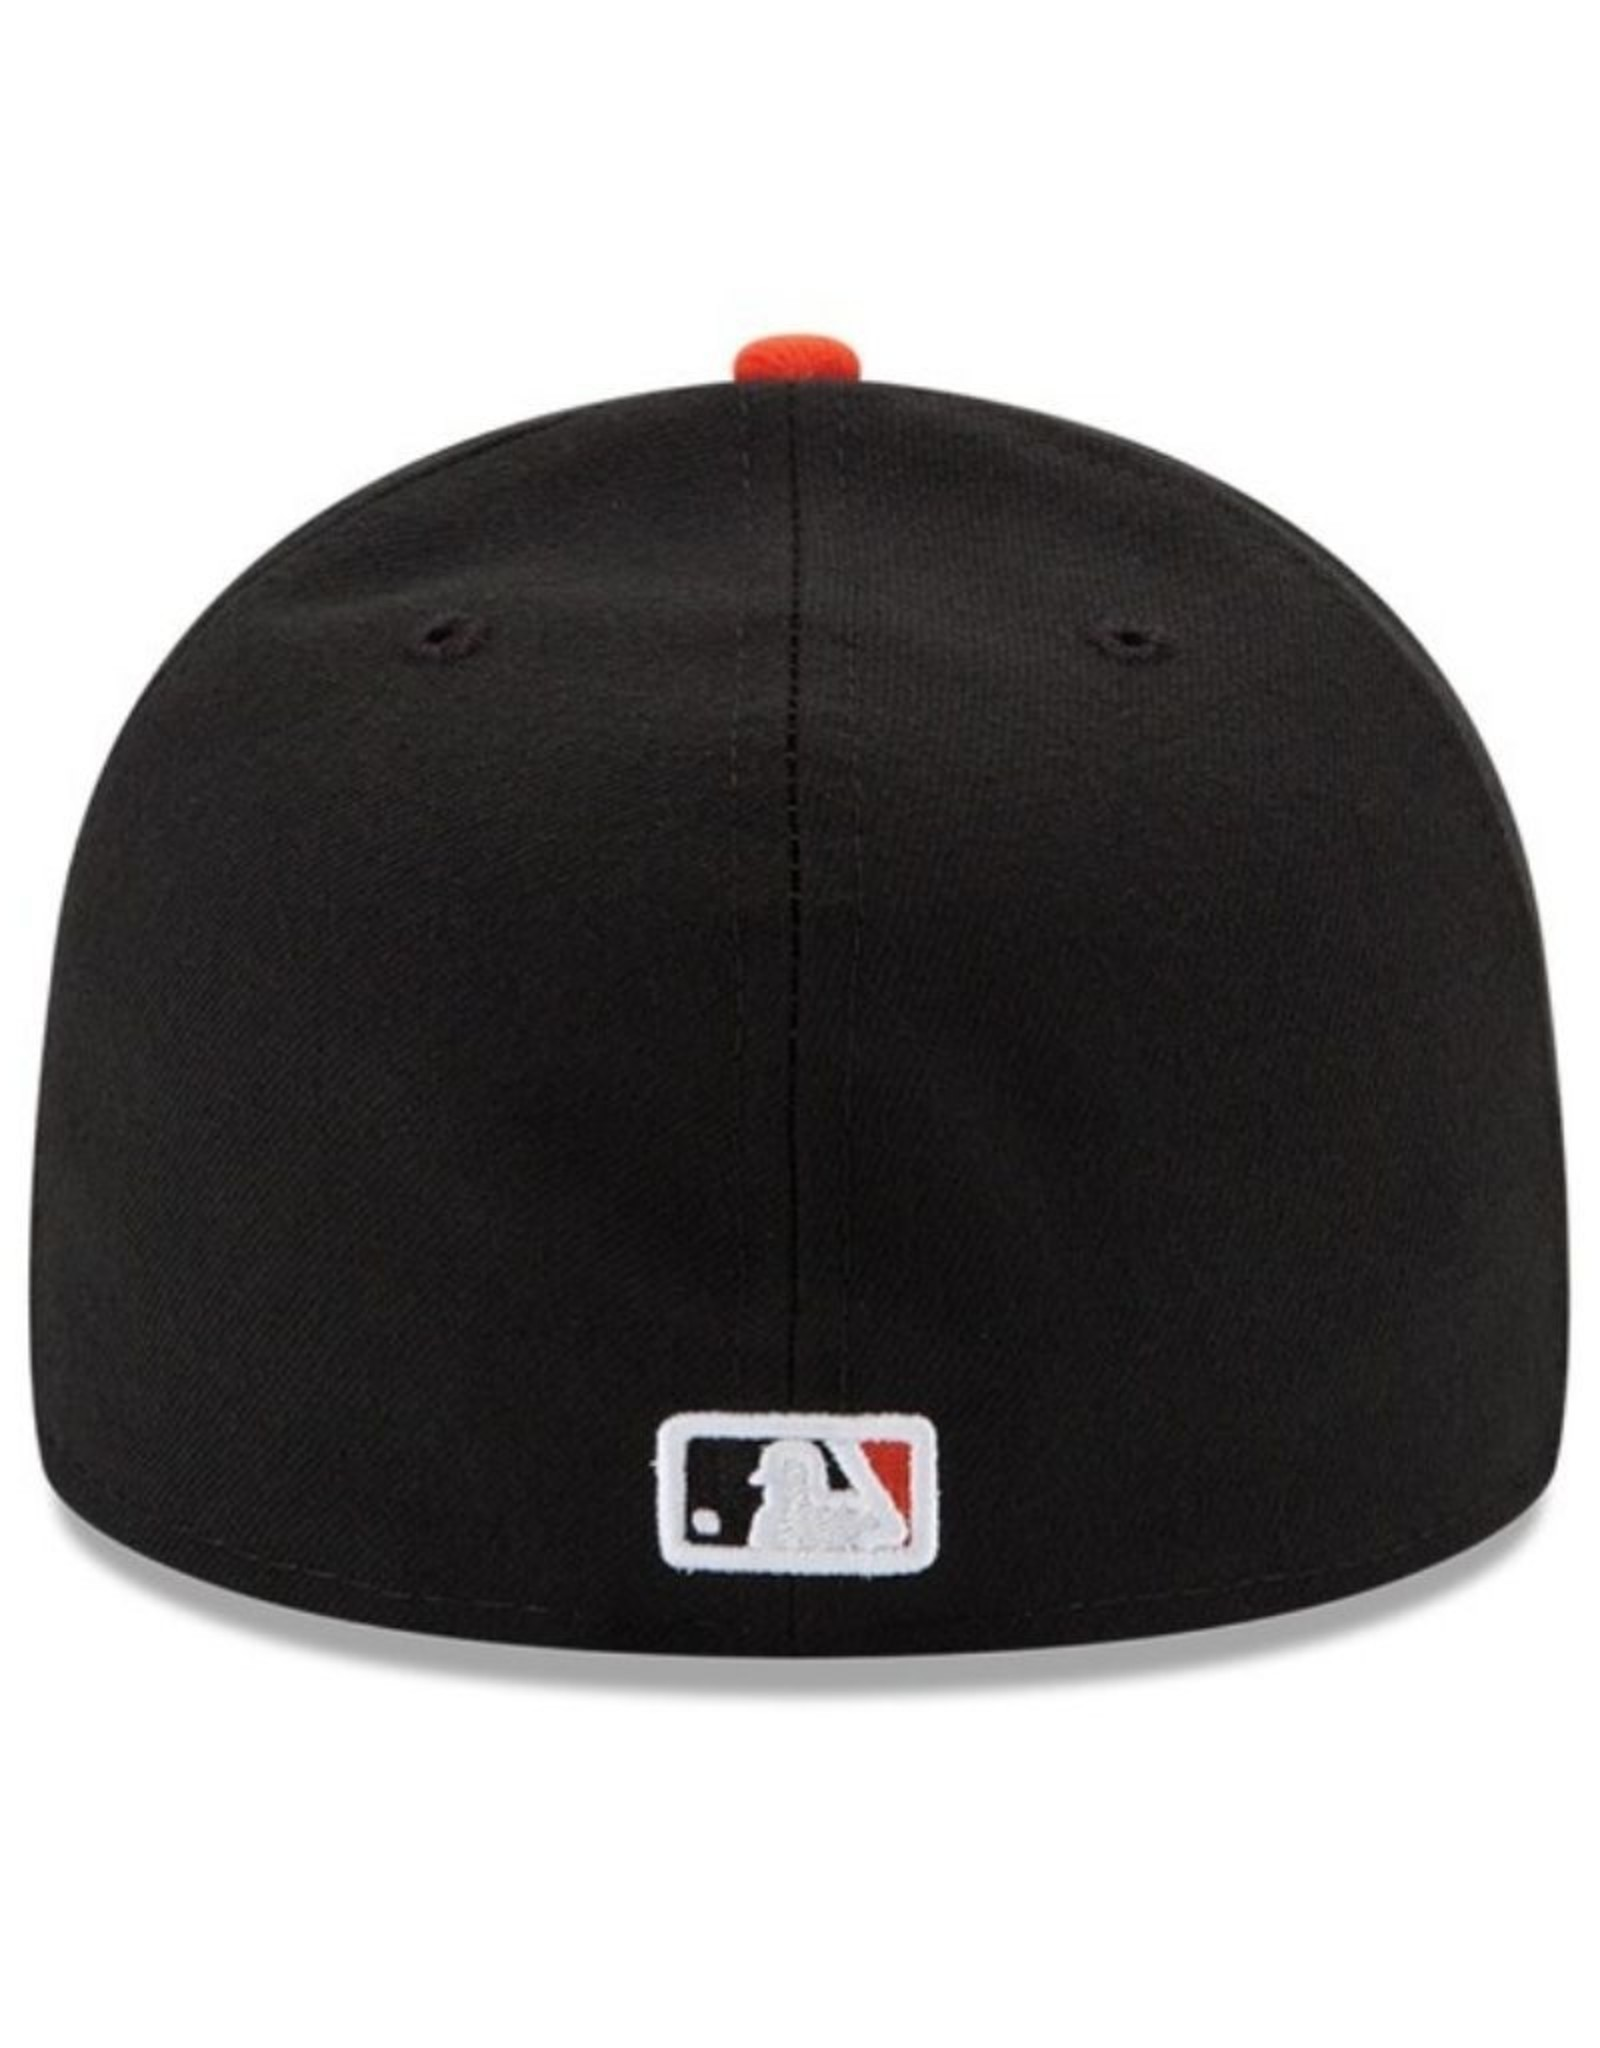 New Era On-Field Authentic 59FIFTY Home Hat San Francisco Giants Black